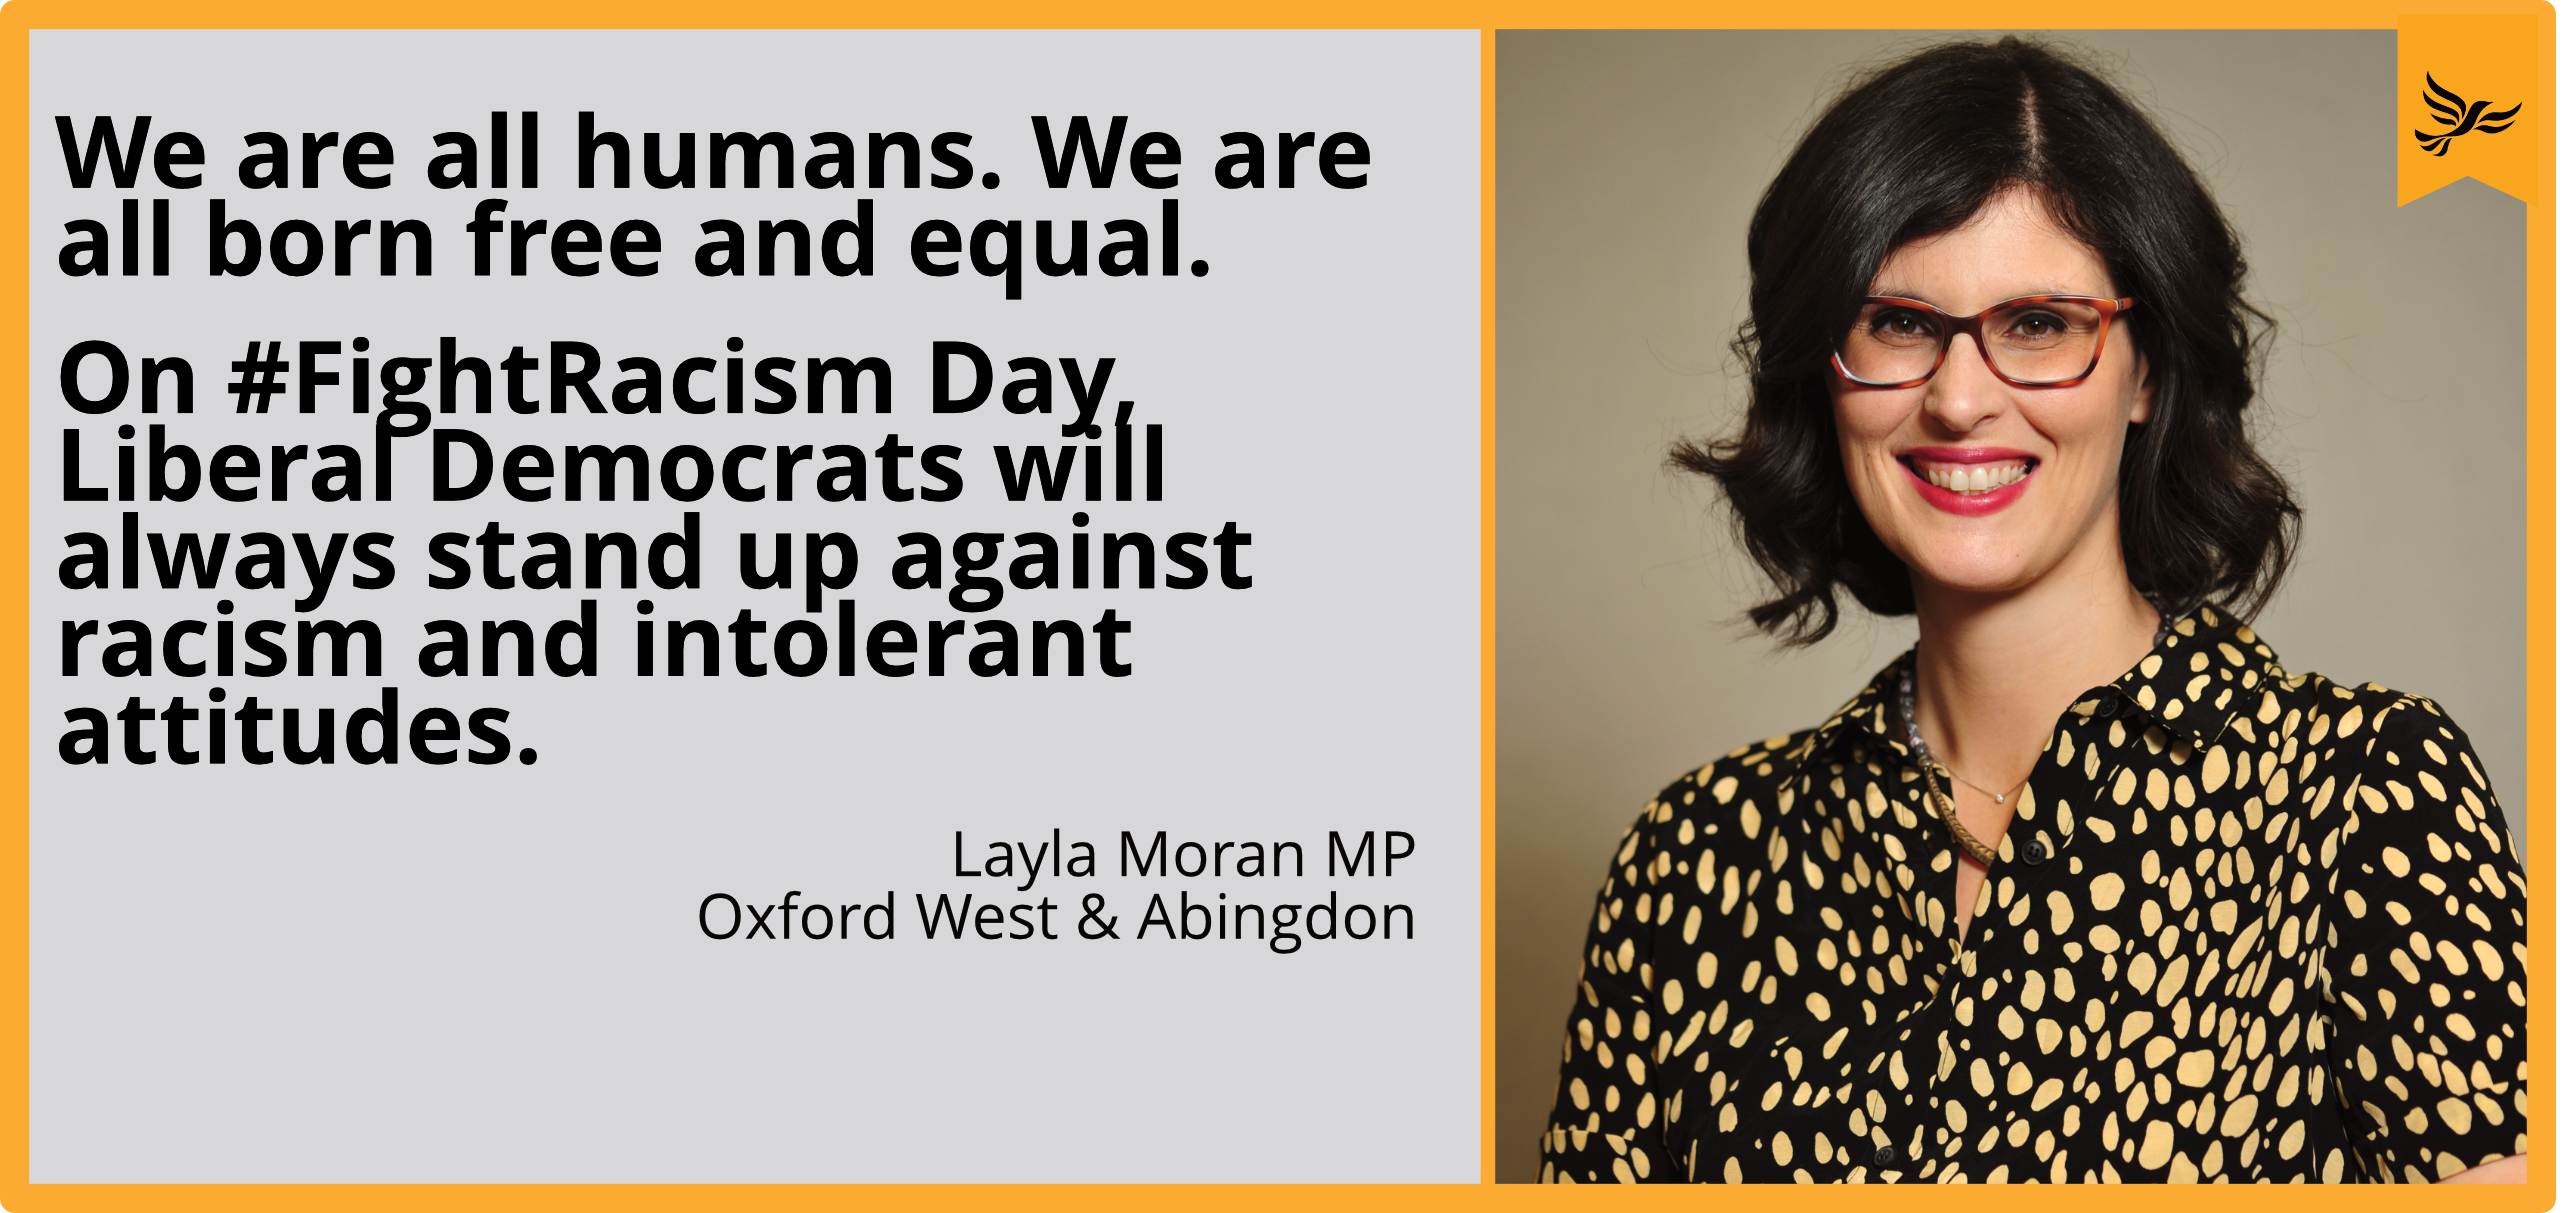 On #FightRacism Day, Liberal Democrats will always stand up against racism and intolerant attitudes.